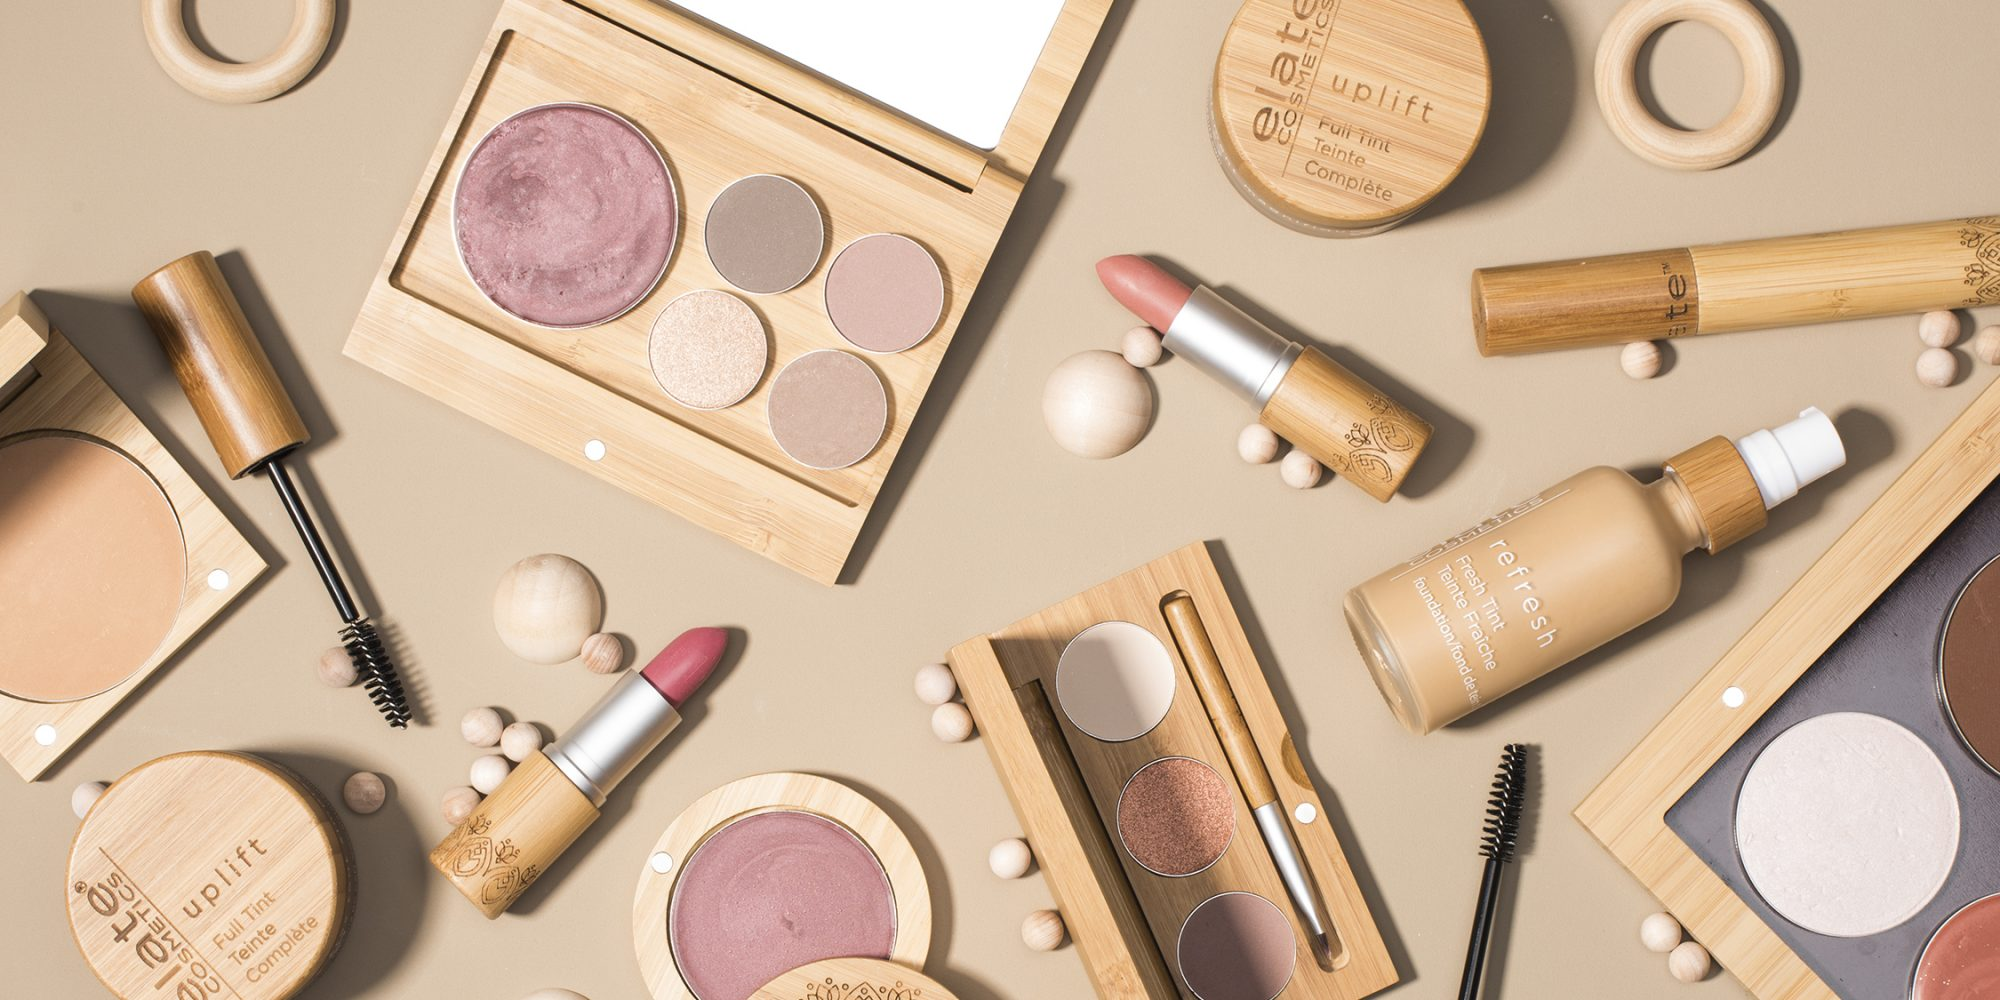 Makeup Brand Elate Cosmetics Has Championed Sustainable Beauty From Day One